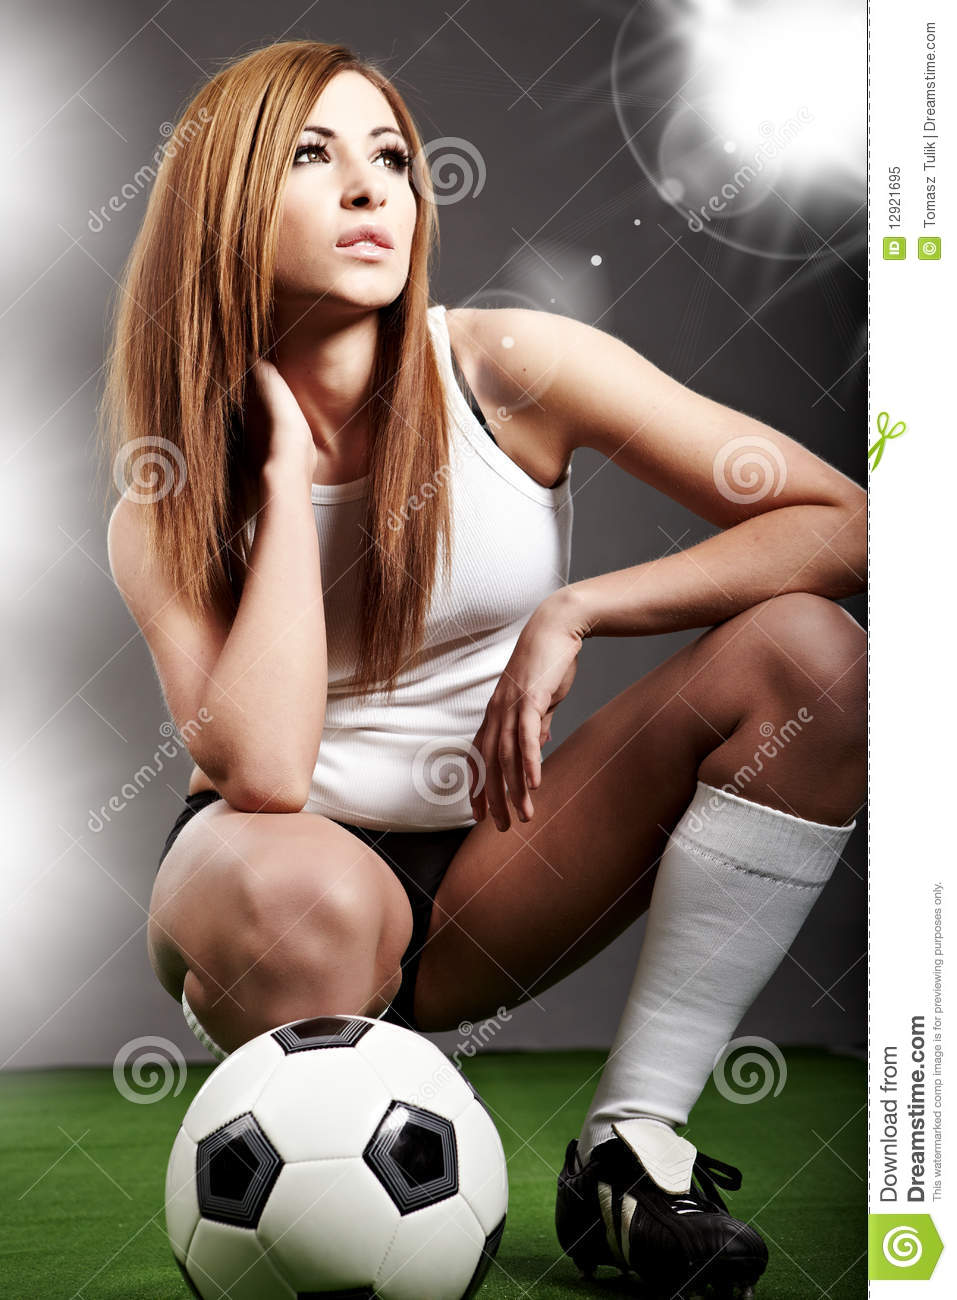 Sexy Soccer Pictures 121